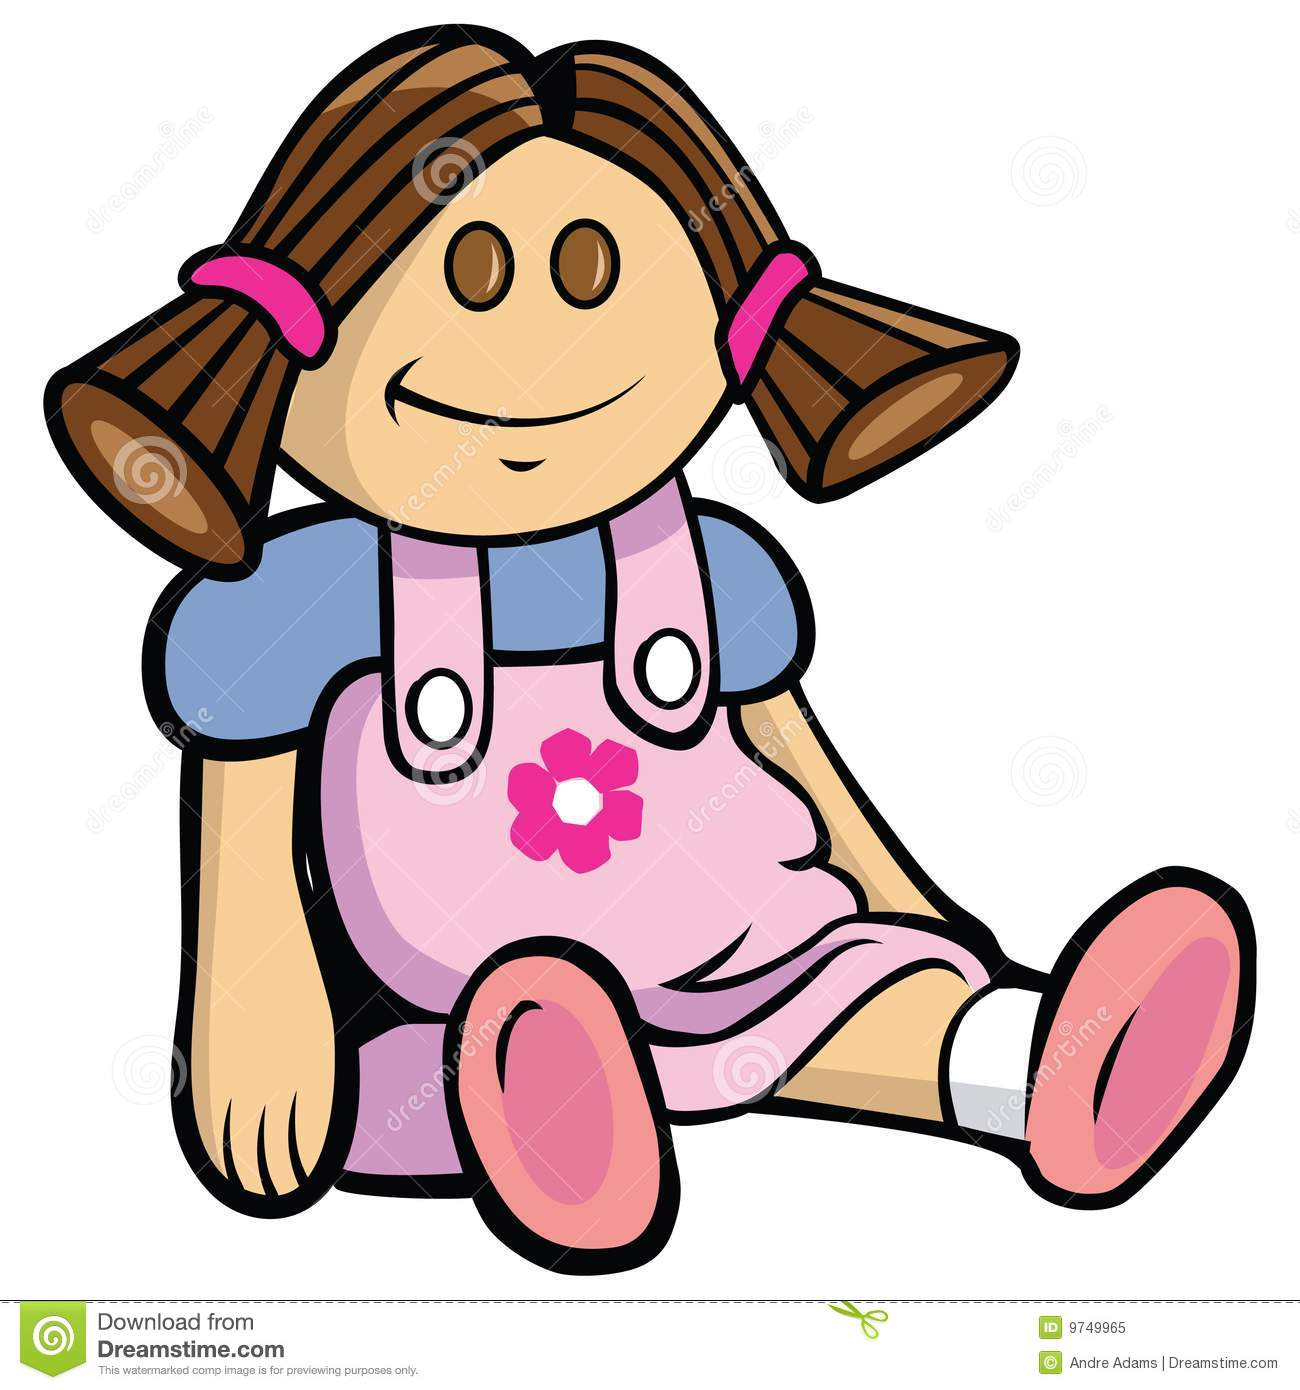 clipart of doll - photo #30